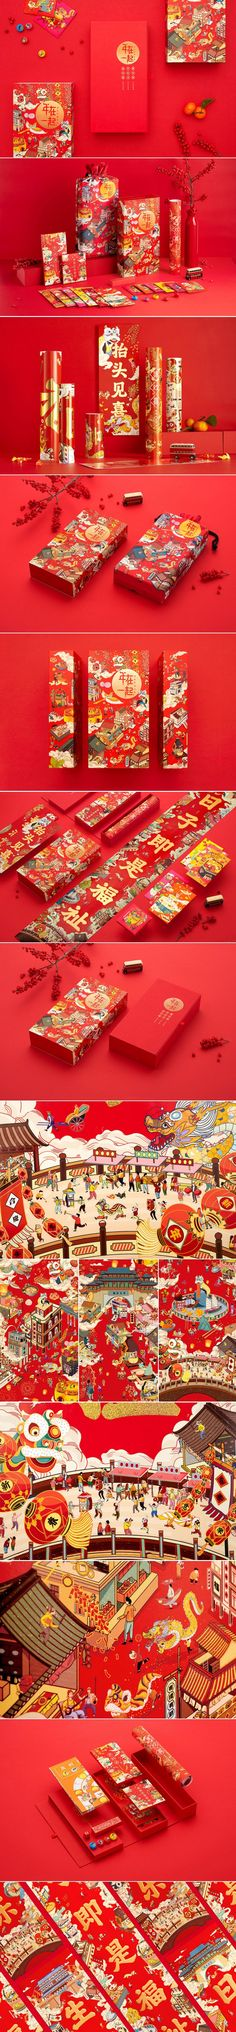 Get Lucky in the New Year With This Beautifully Illustrated Packaging — The Dieline | Packaging & Branding Design & Innovation News